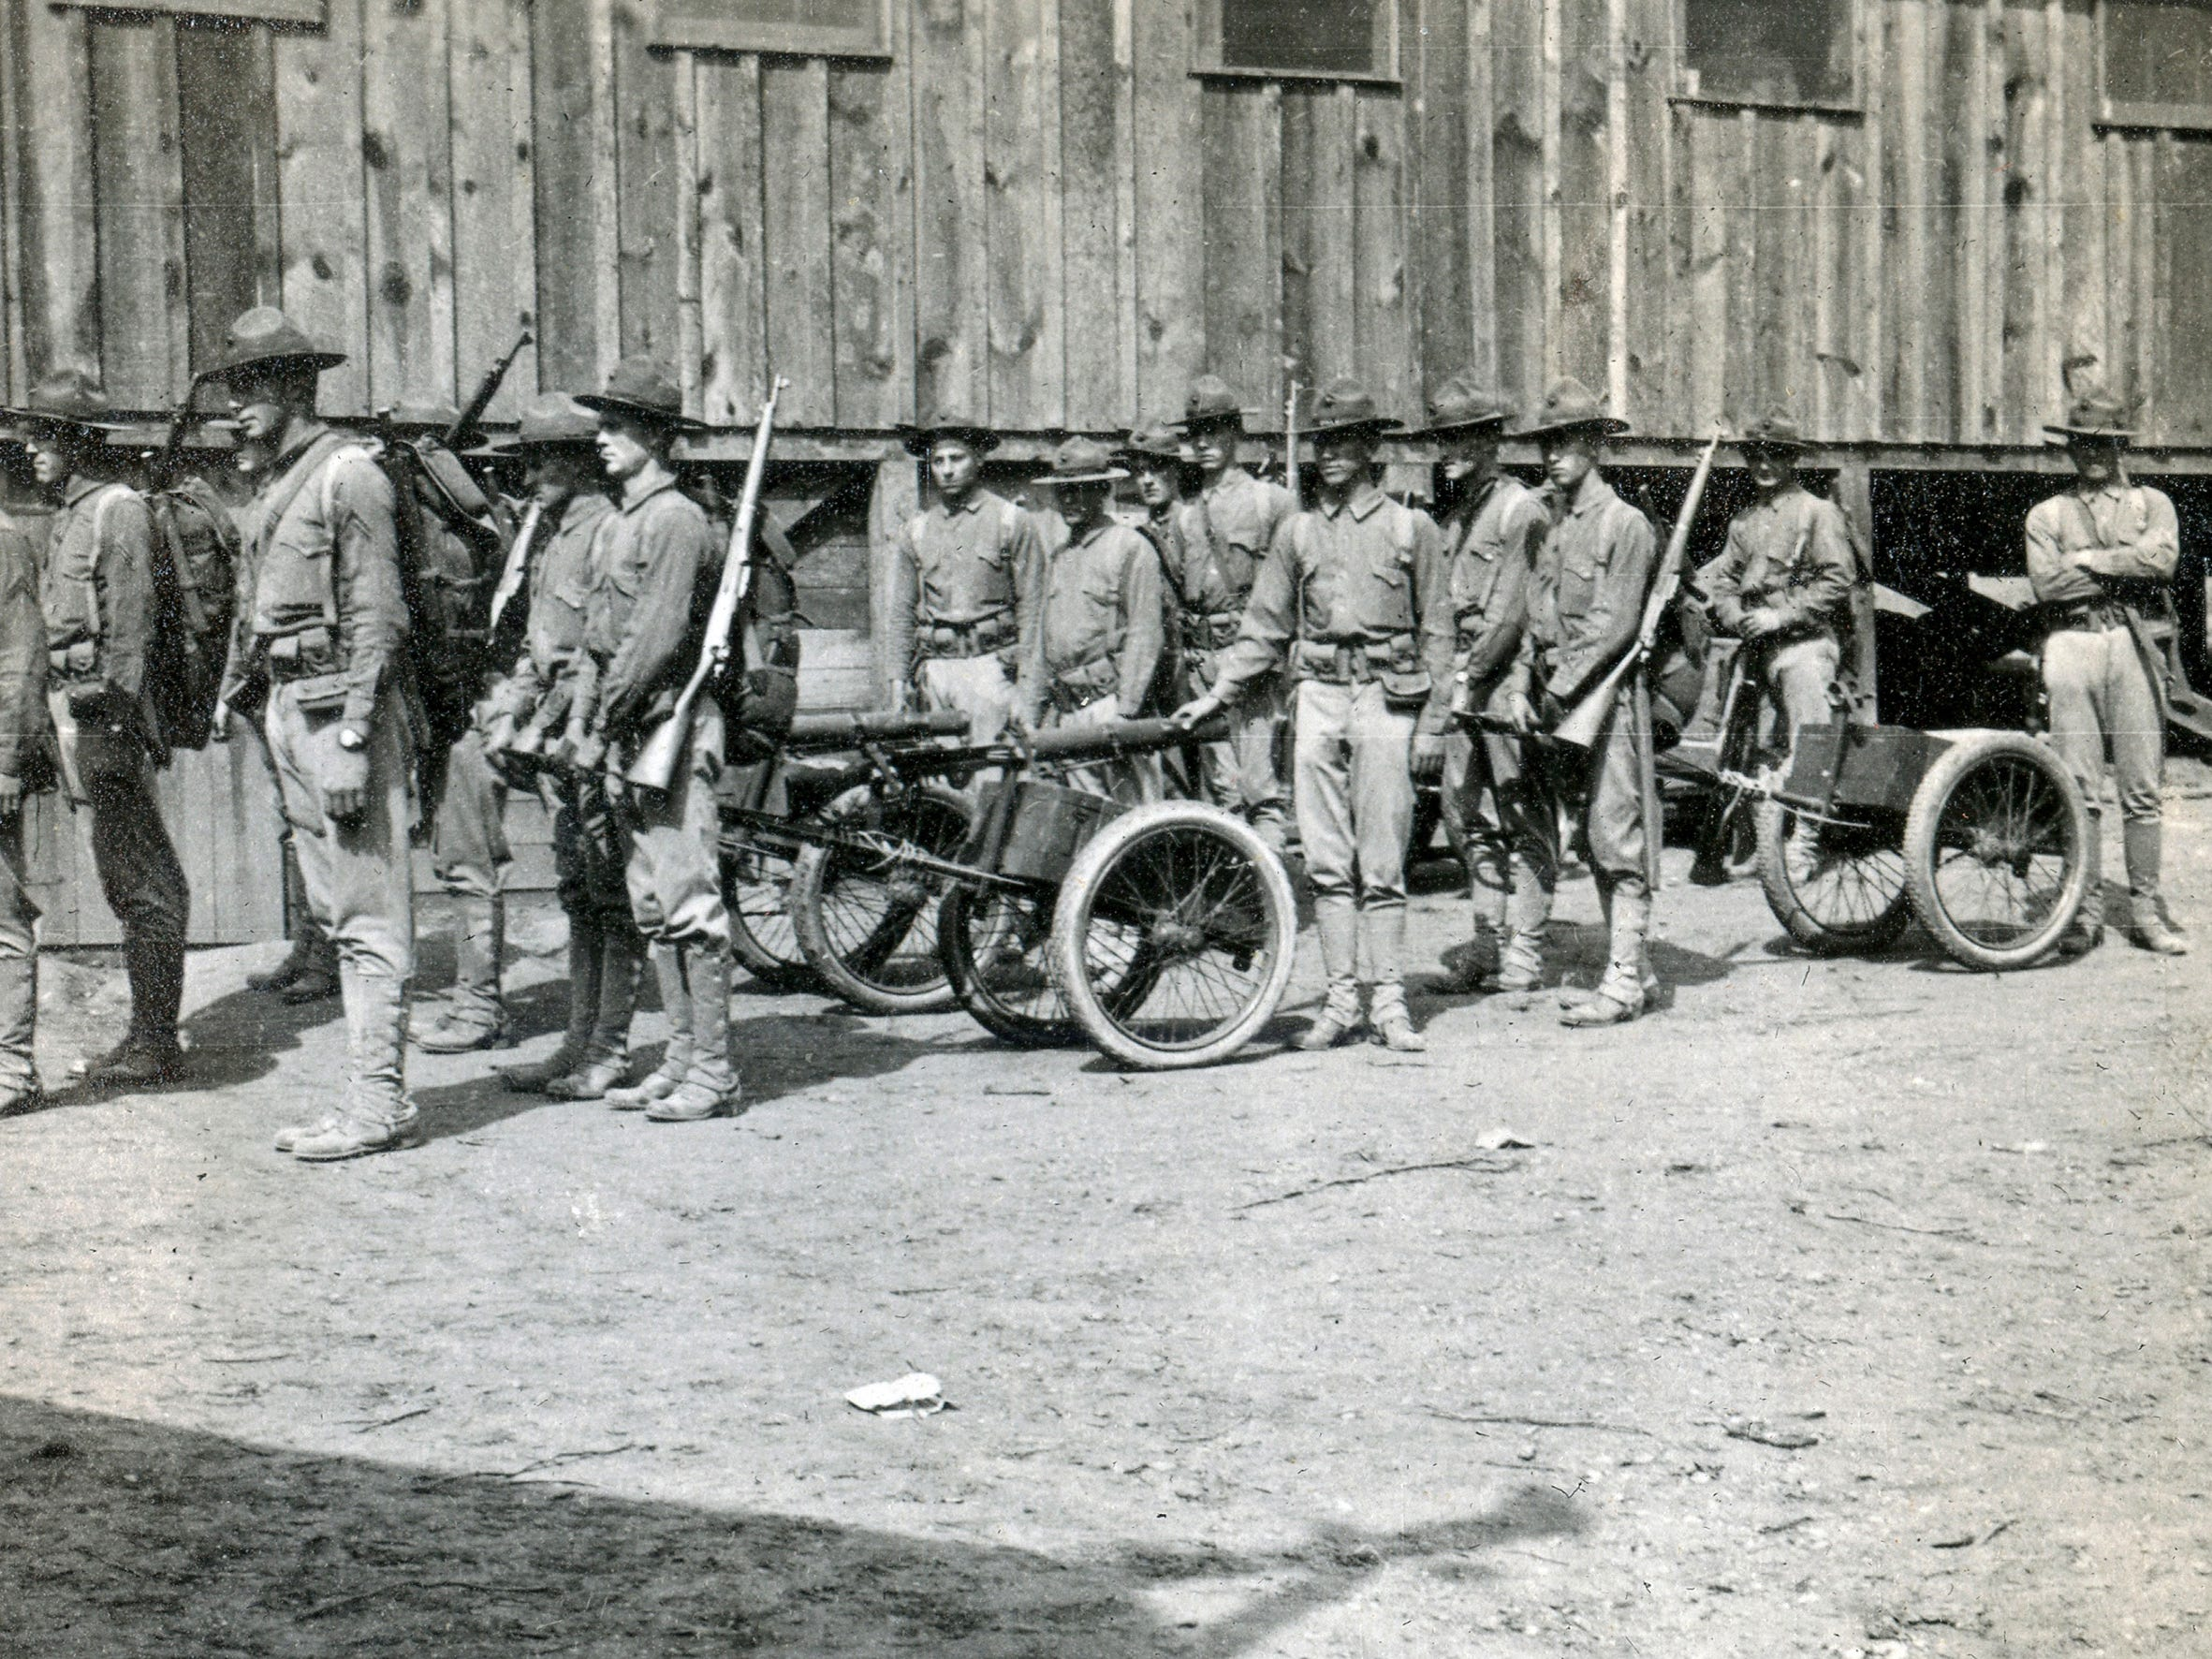 Pulling gun and ammunition carriages, two squads ready to march in full gear at Quantico, VA. Harold Reilly left Marquette University in May 1917 to enlist in the U.S. Marines where he was assigned to the 81st Co., 6th Machine Gun Battalion. His unit arrived in France on Dec. 28, 1917. In September 1918, he was wounded and hospitalized until Oct. 31 and returned to his unit. On Nov. 2 Reilly died by artillery, nine days before the end of World War 1. Reilly's parents did not learn of their loss until Nov. 20.